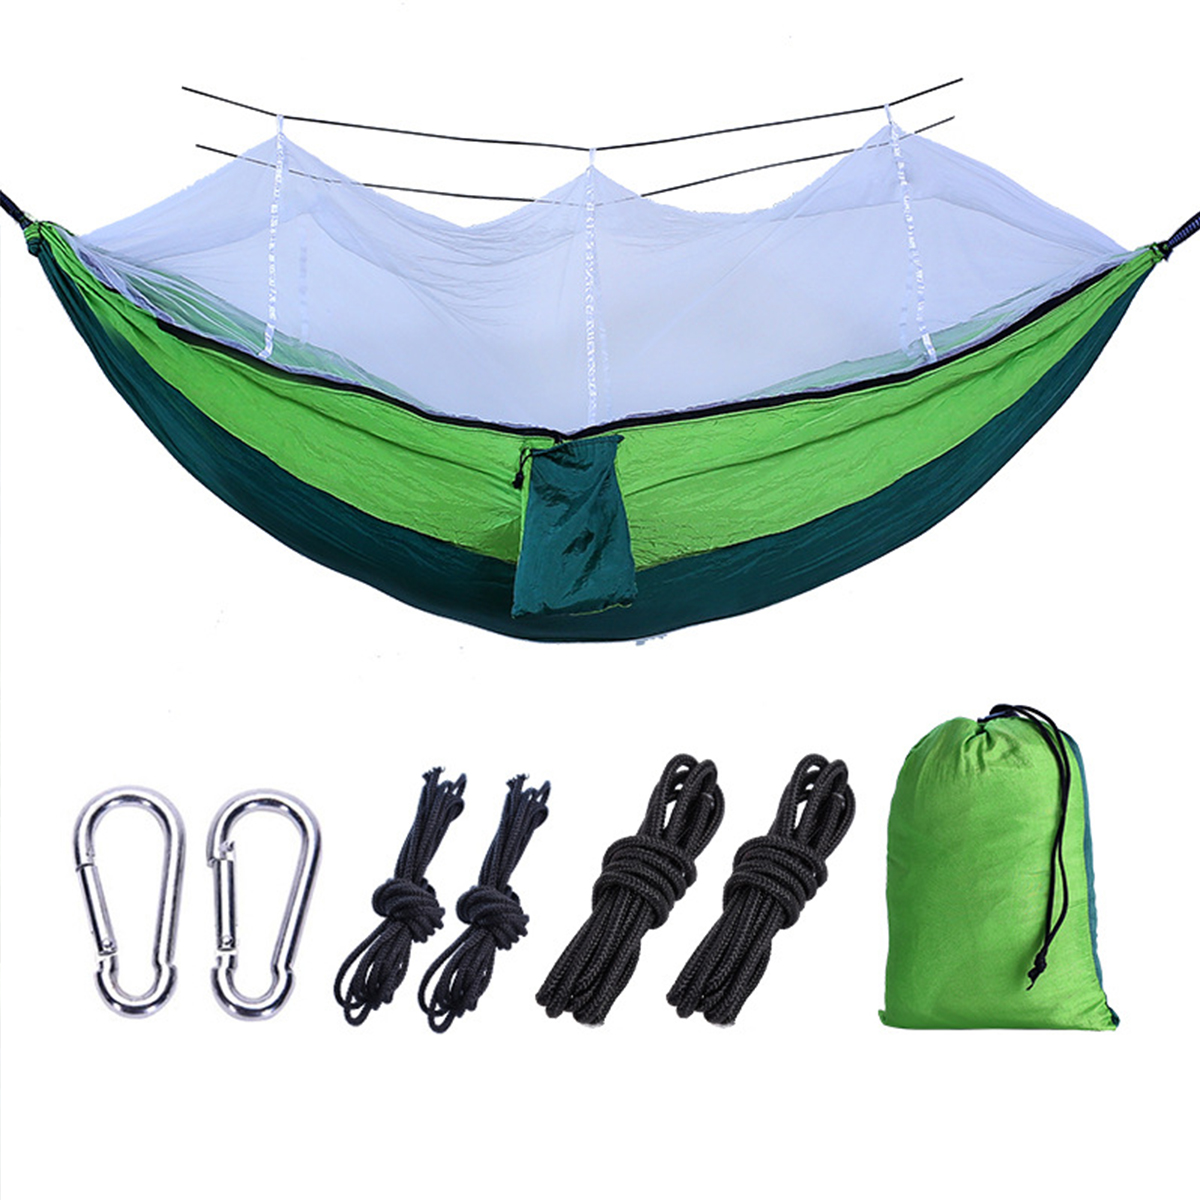 Ipree® 260*140CM with Mosquito Net Portable Travel Hammock Comfortable Hommock Camping Bed Fits 2 Persons